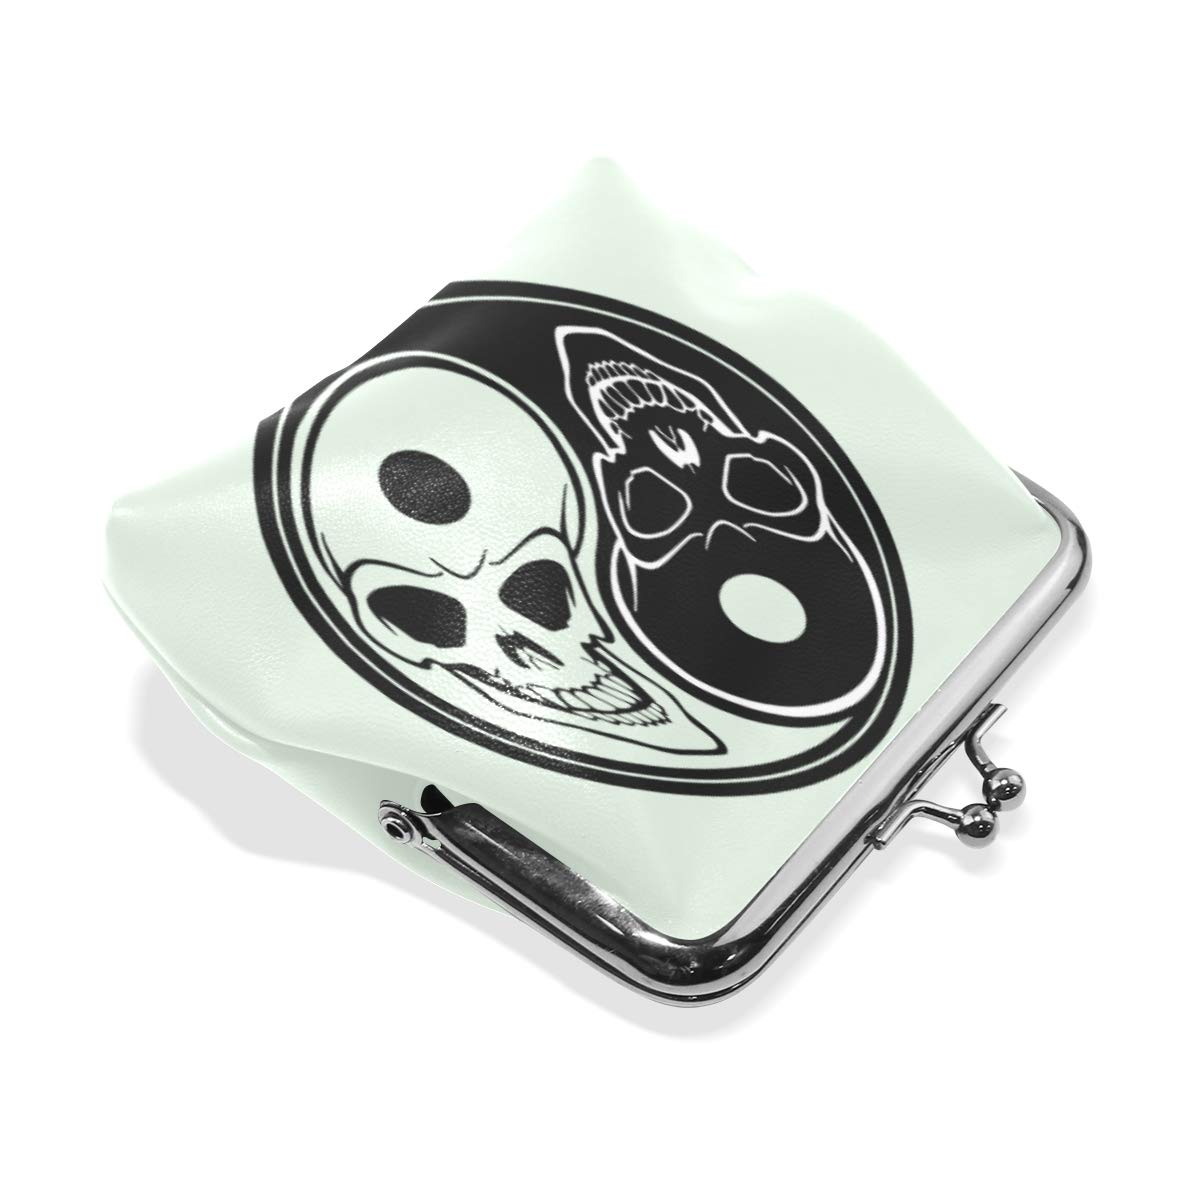 TIKISMILE Yin Yang With Skulls Leather Fashion Buckle Cute Coin Purse Bags Clutch Pouch Wallet